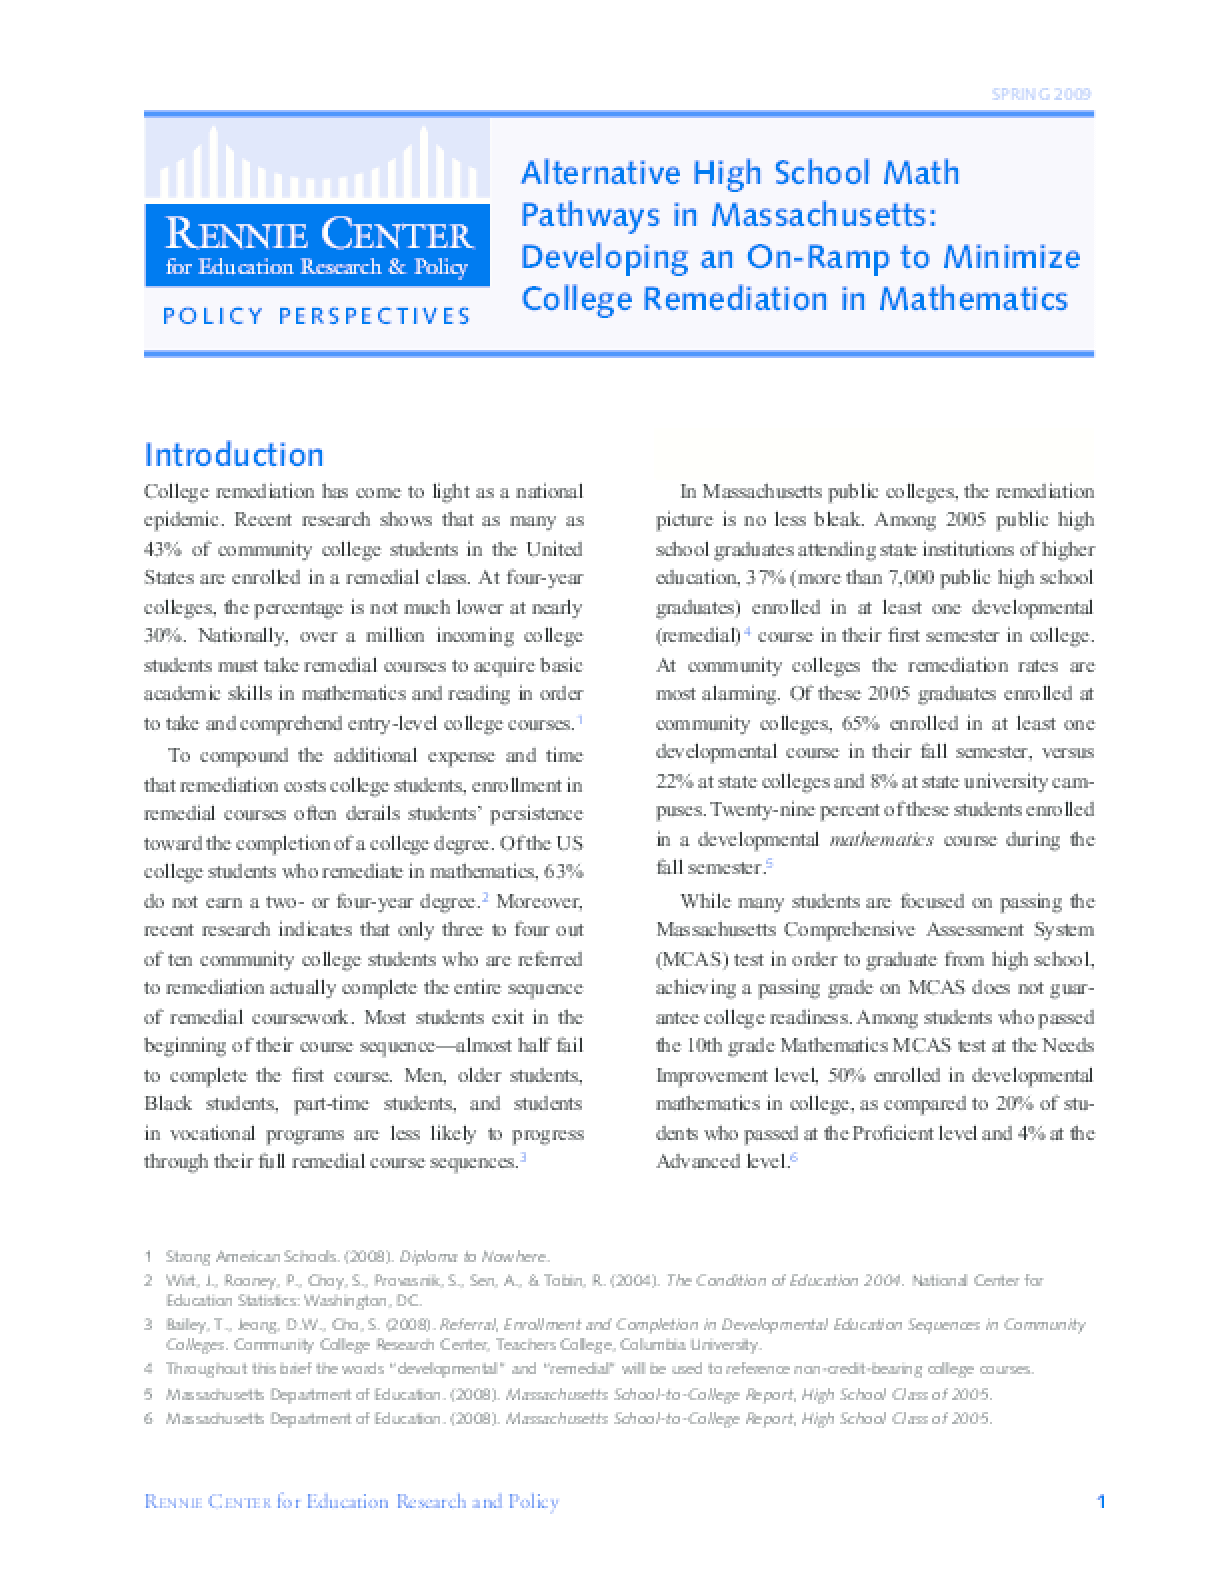 Alternative High School Math Pathways in Massachusetts: Developing an On-Ramp to Minimize College Remediation in Mathematics